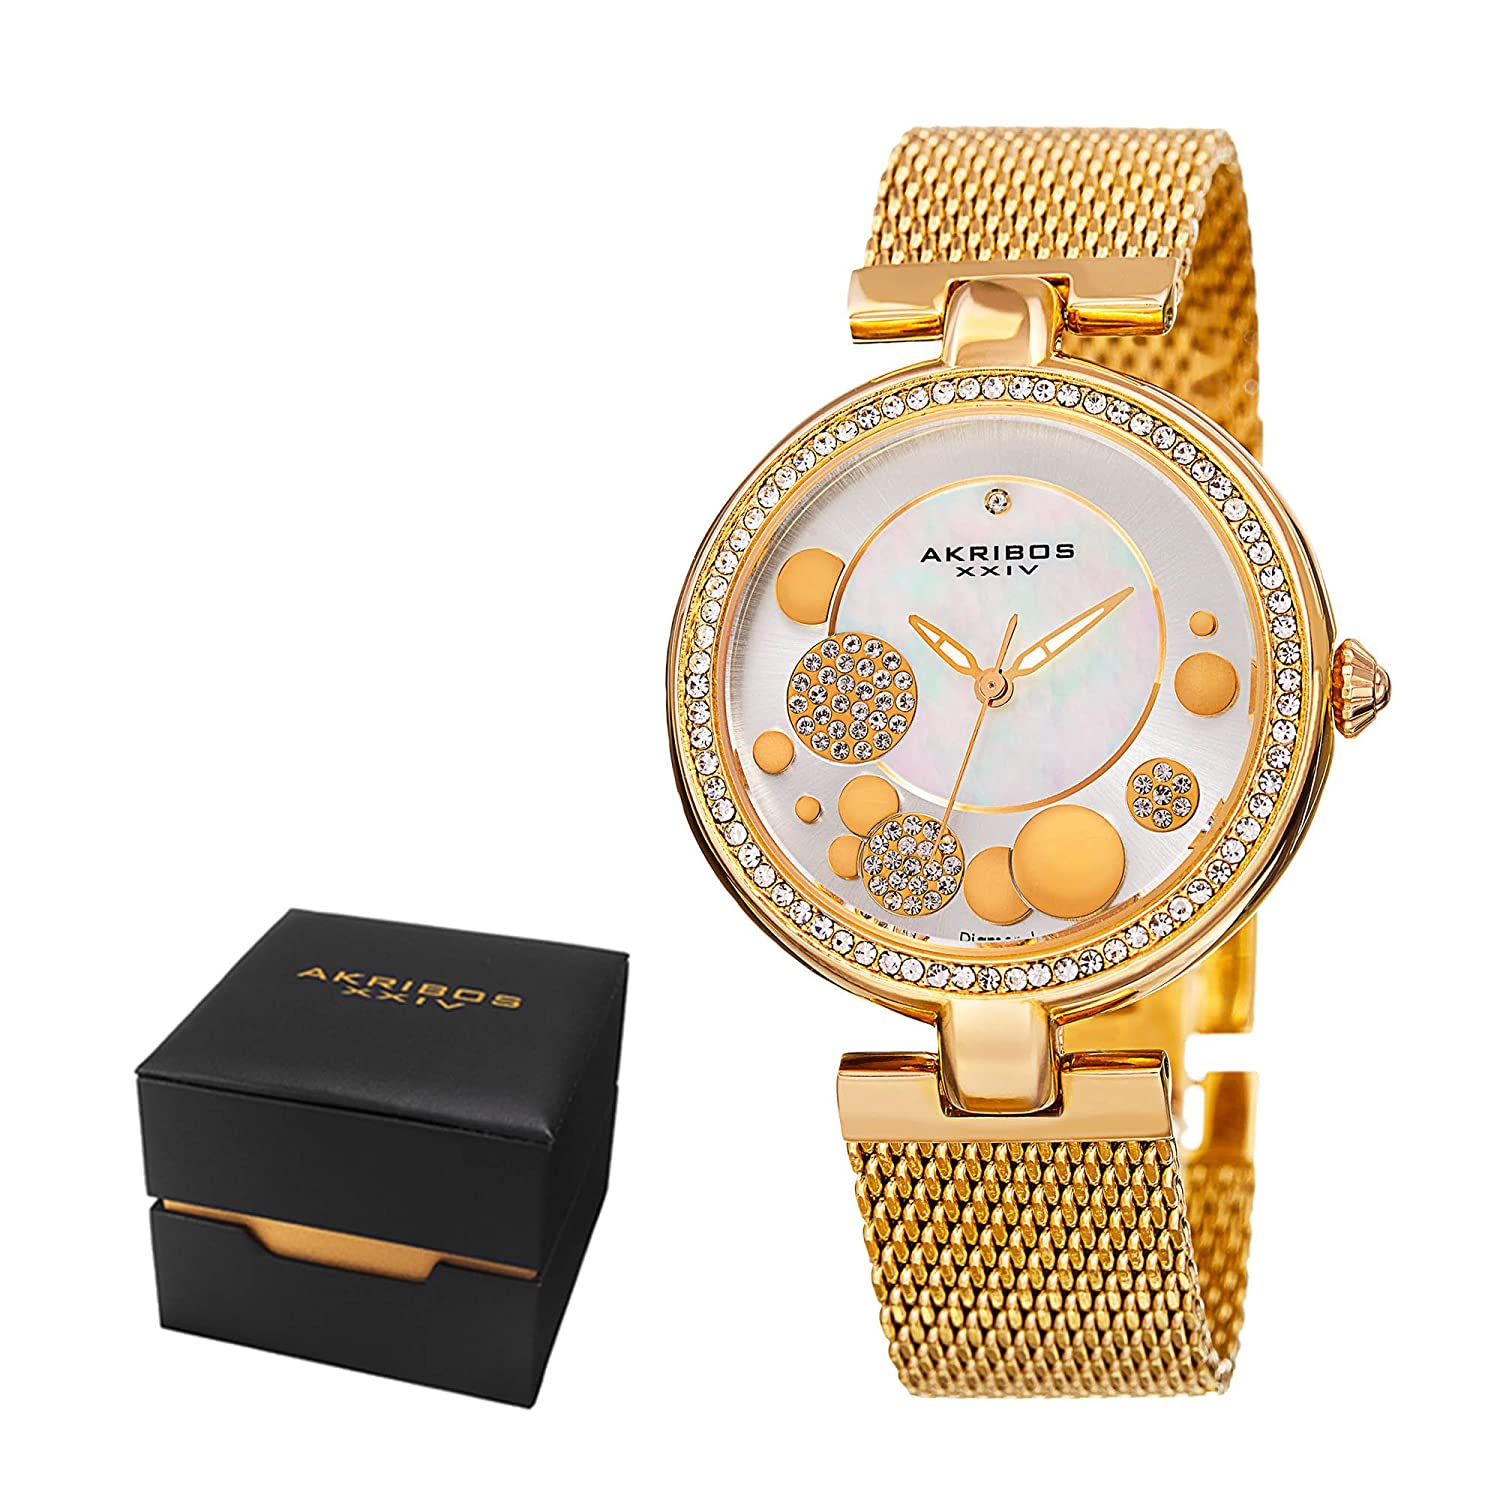 Amazon.com: Akribos XXIV Womens Fashion Sparkling Quartz Watch - White Mother of Pearl Sunburst and Crystal Pave Dial - Featuring a Yellow Gold Stainless ...